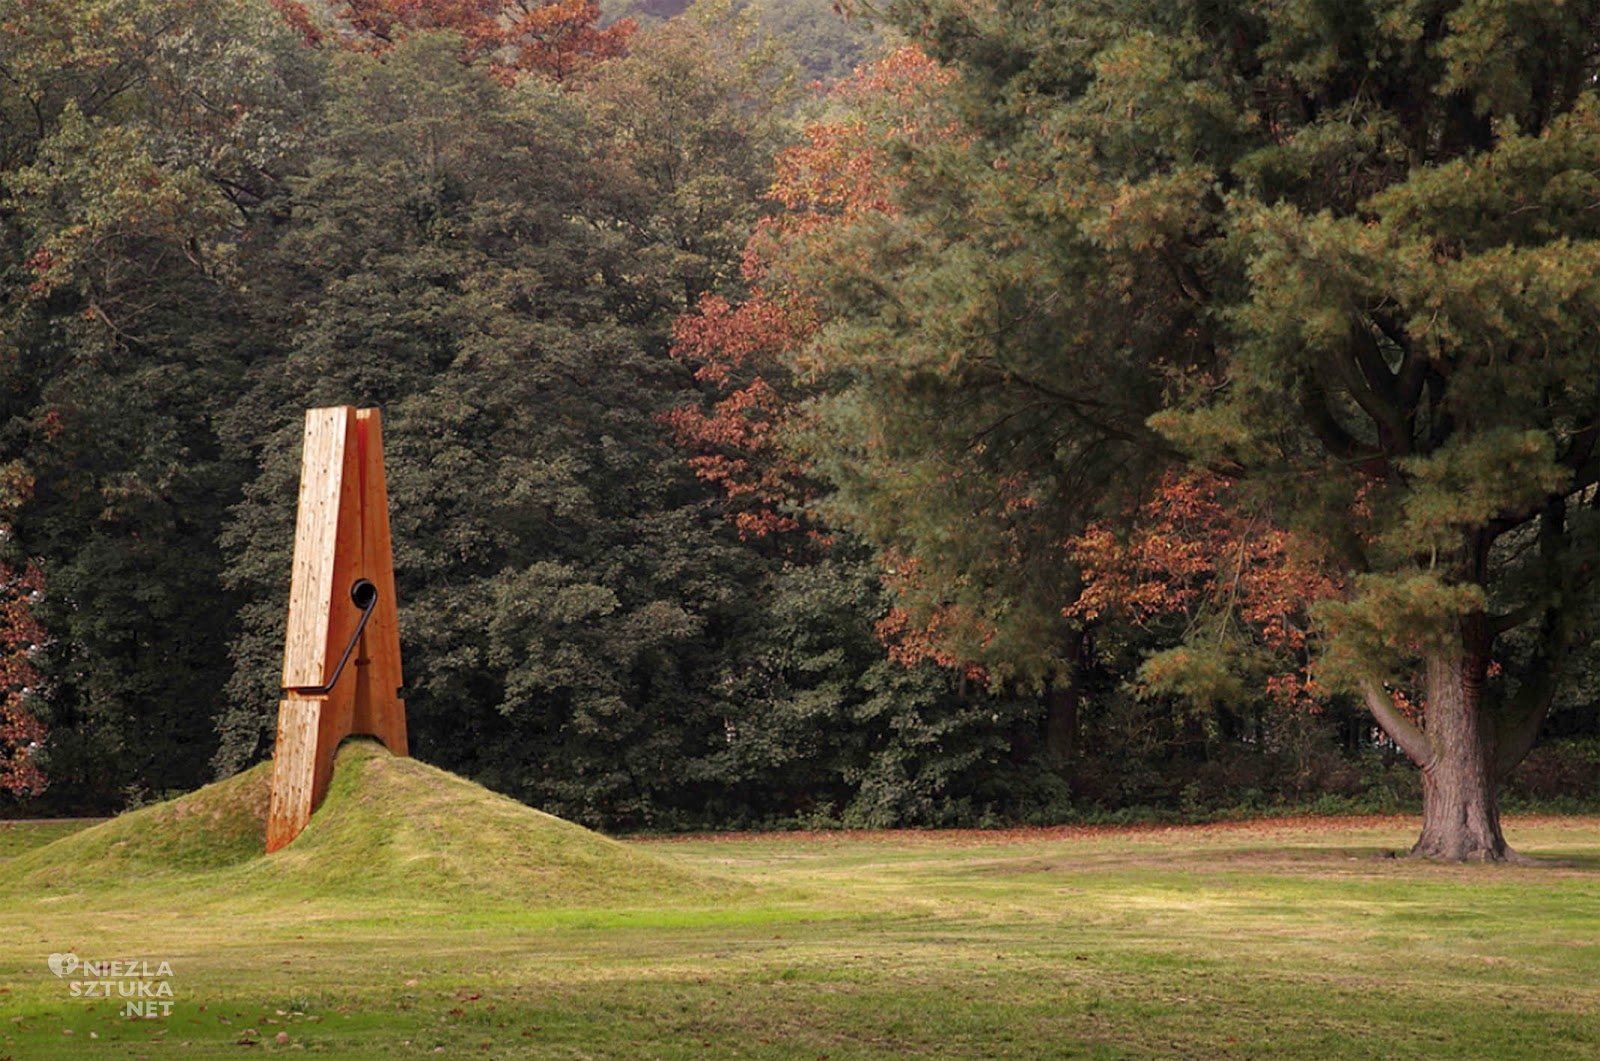 Mehmet Ali Uysal, The Giant Clothespin, fot. Aasararchitecture.com